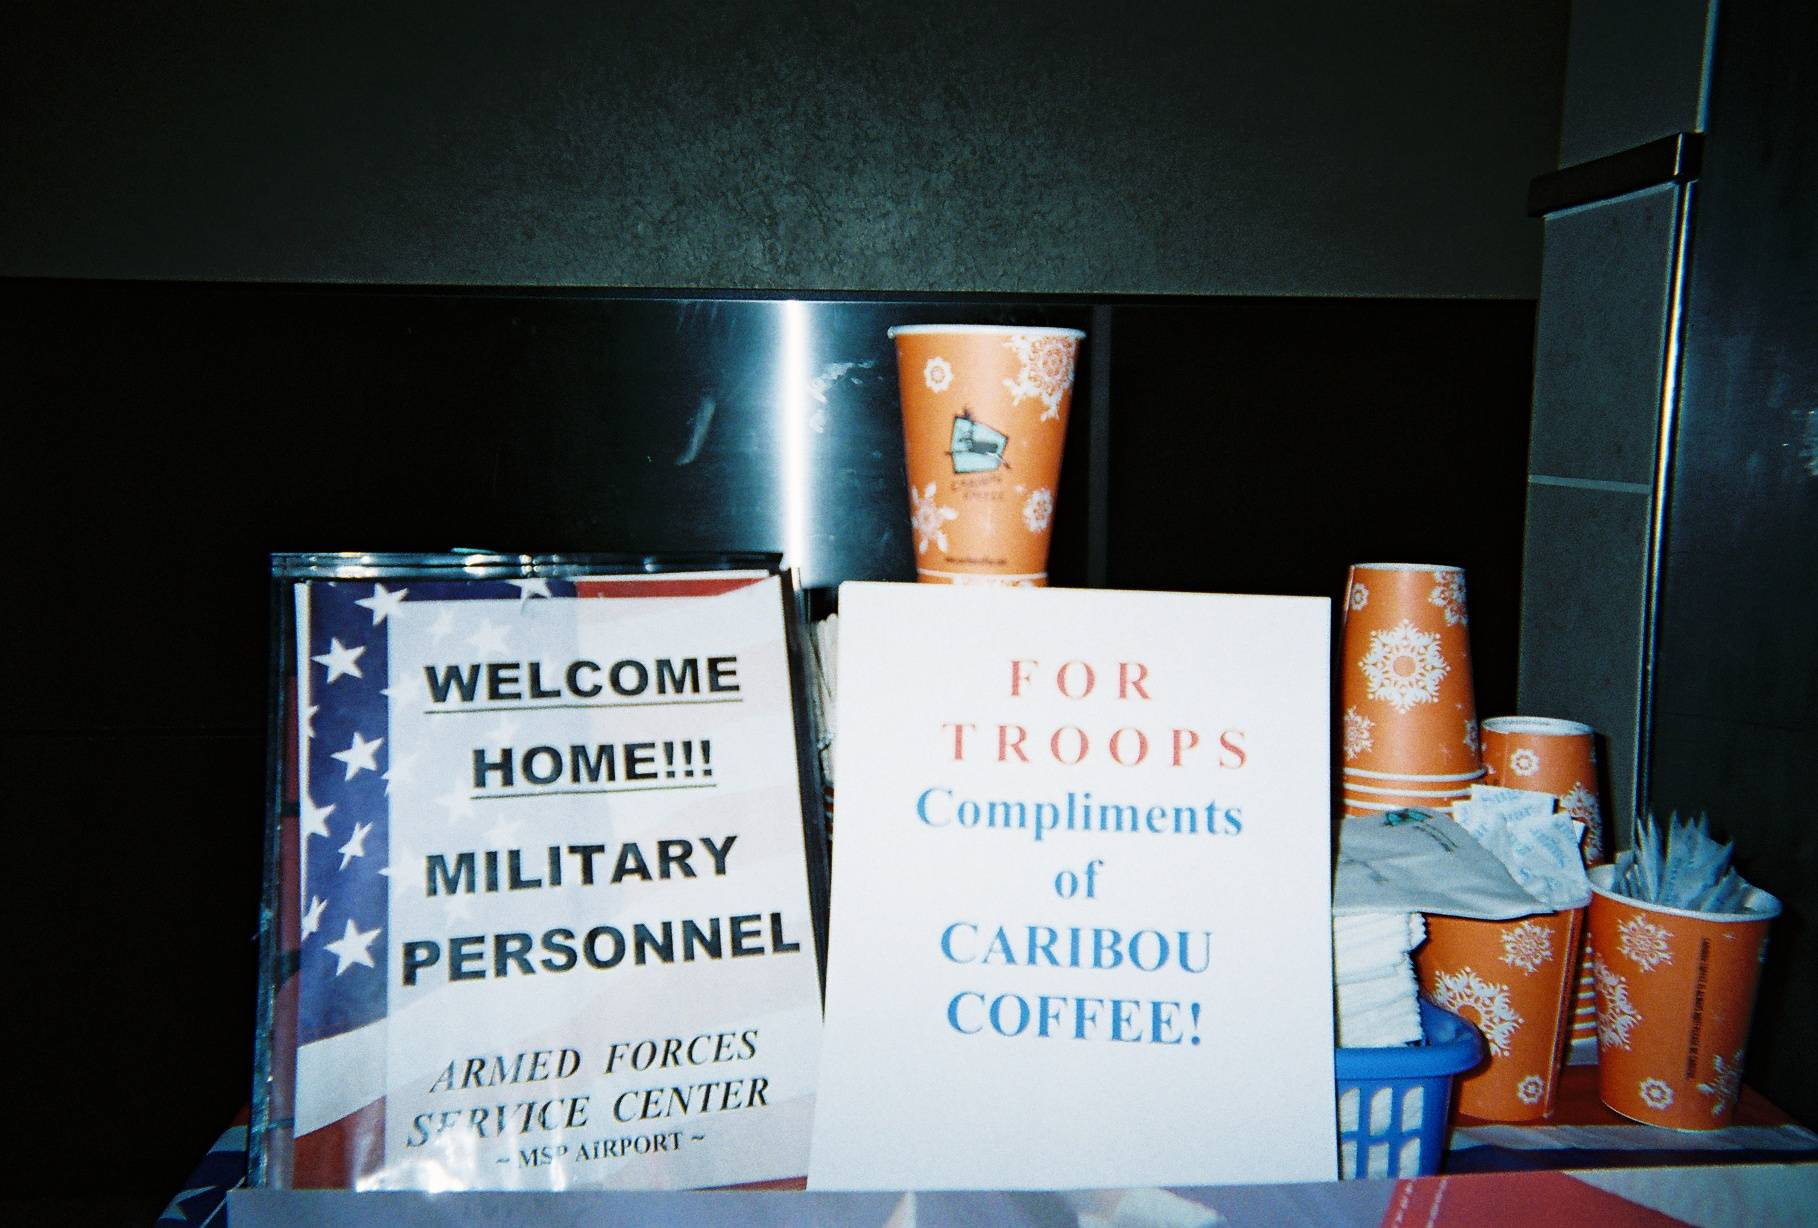 Welcome Home! Signage and Caribou Coffee complimentary drinks.